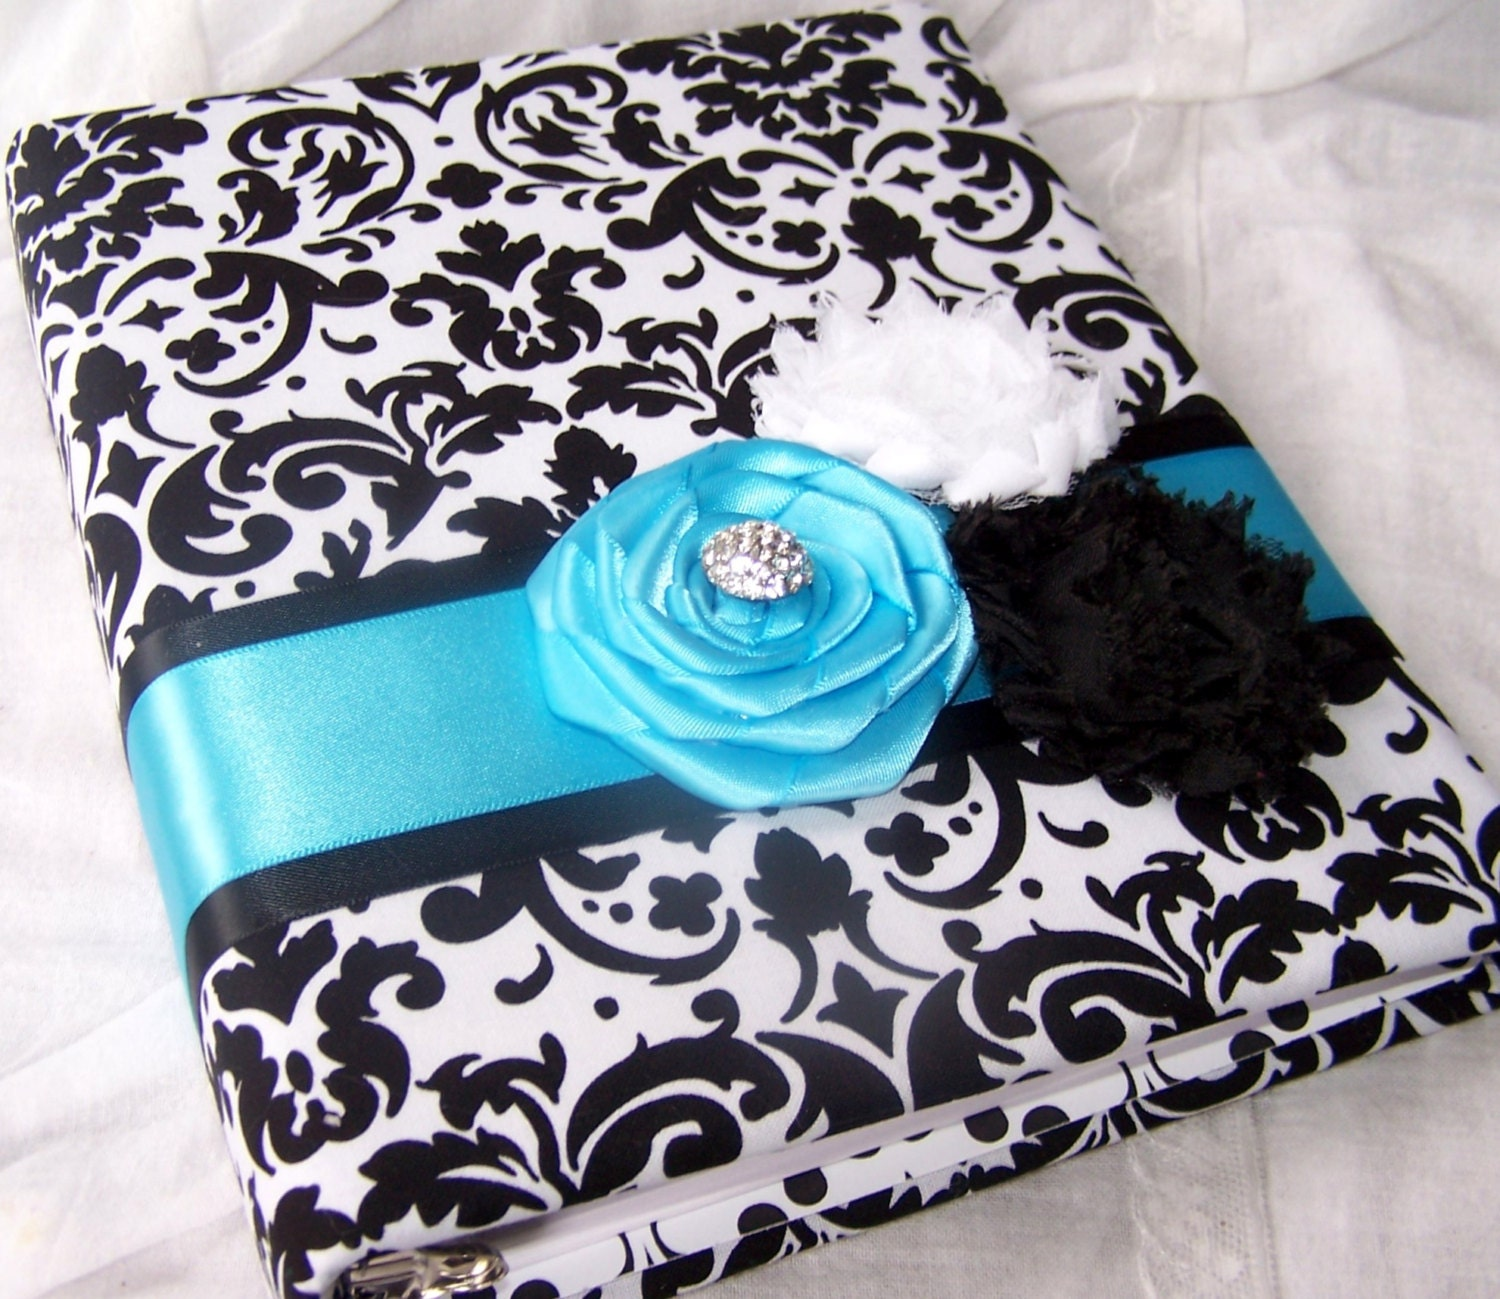 Bridal Shower Gift Record Book : Bridal Shower Gift Recording BookBlack and White Damask, Turquoise ...